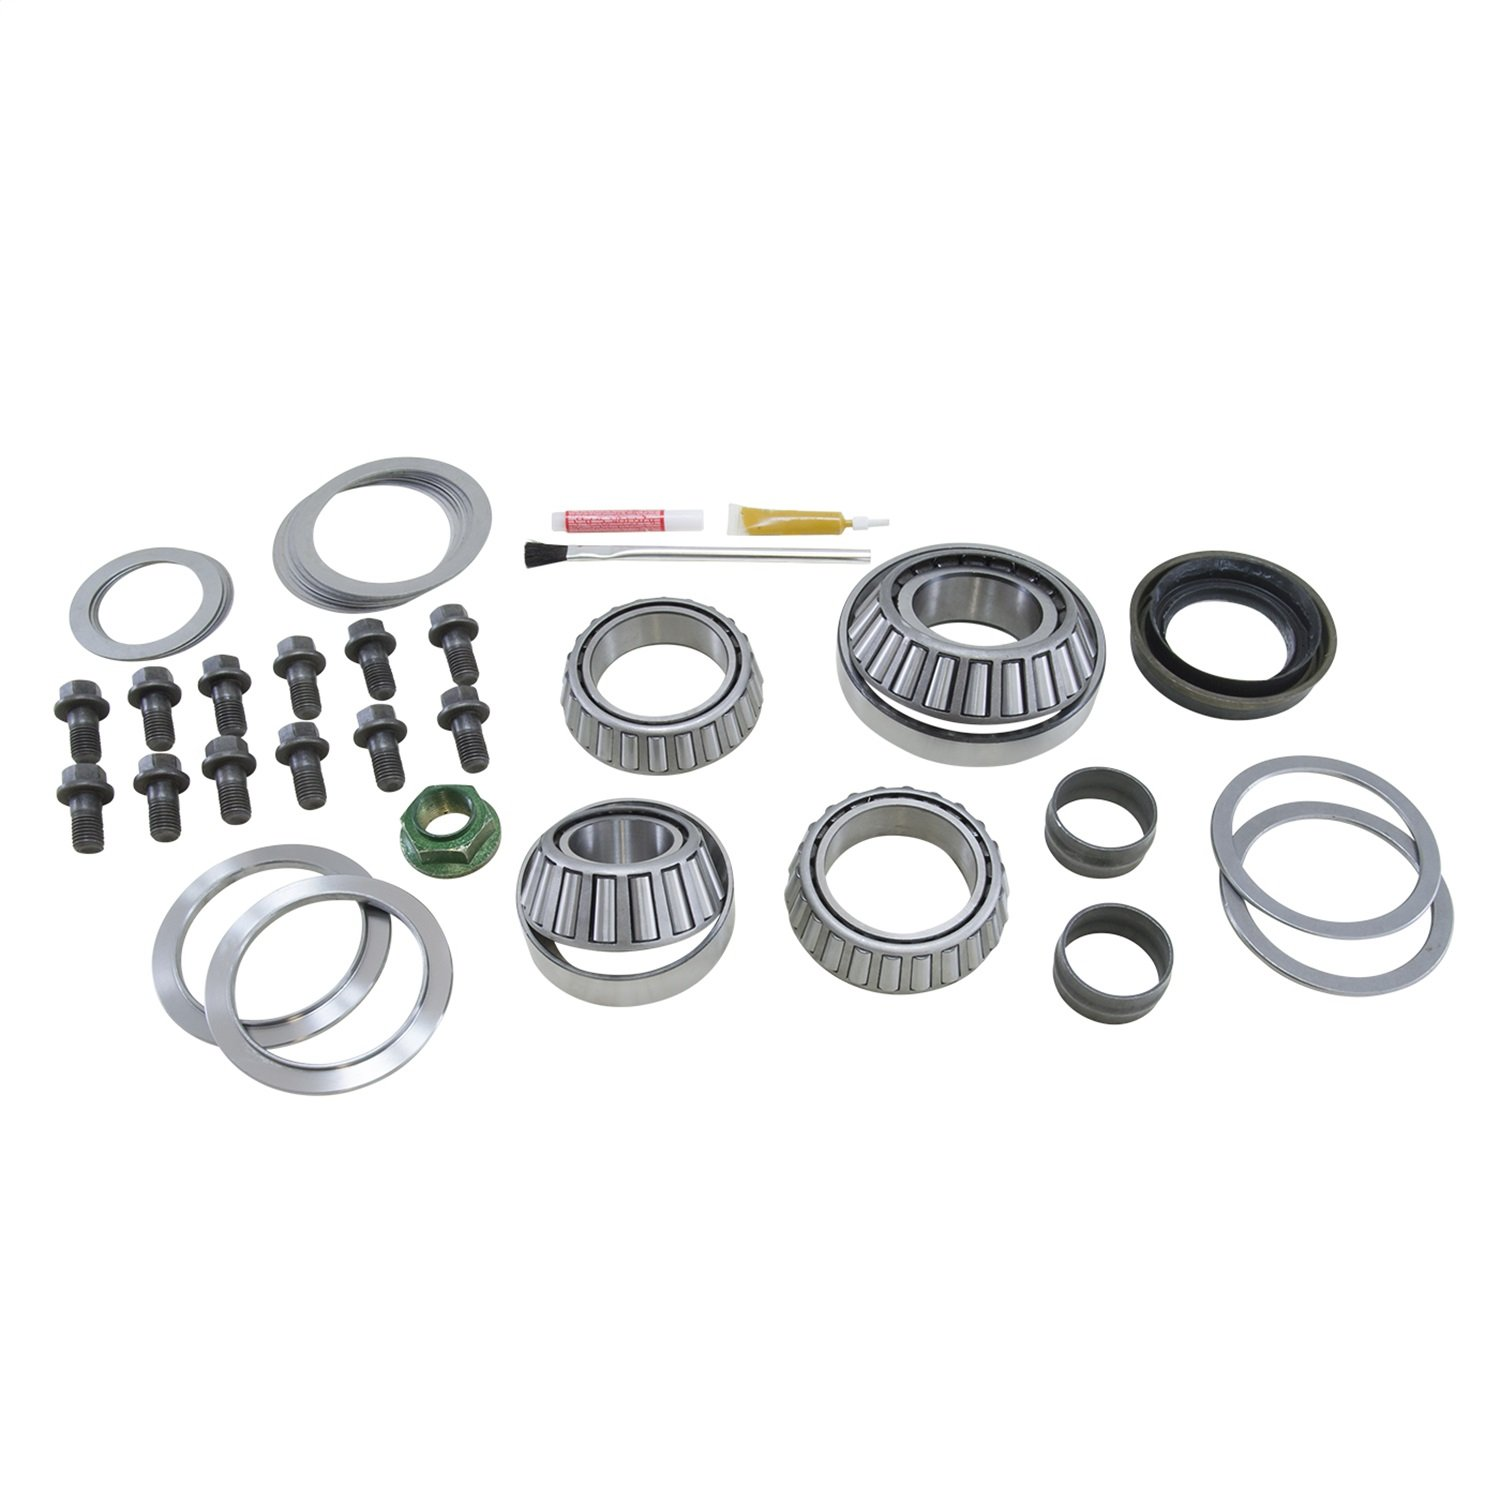 USA Standard Gear (ZK GM9.5-B) Master Overhaul Kit for GM 9.5 Differential